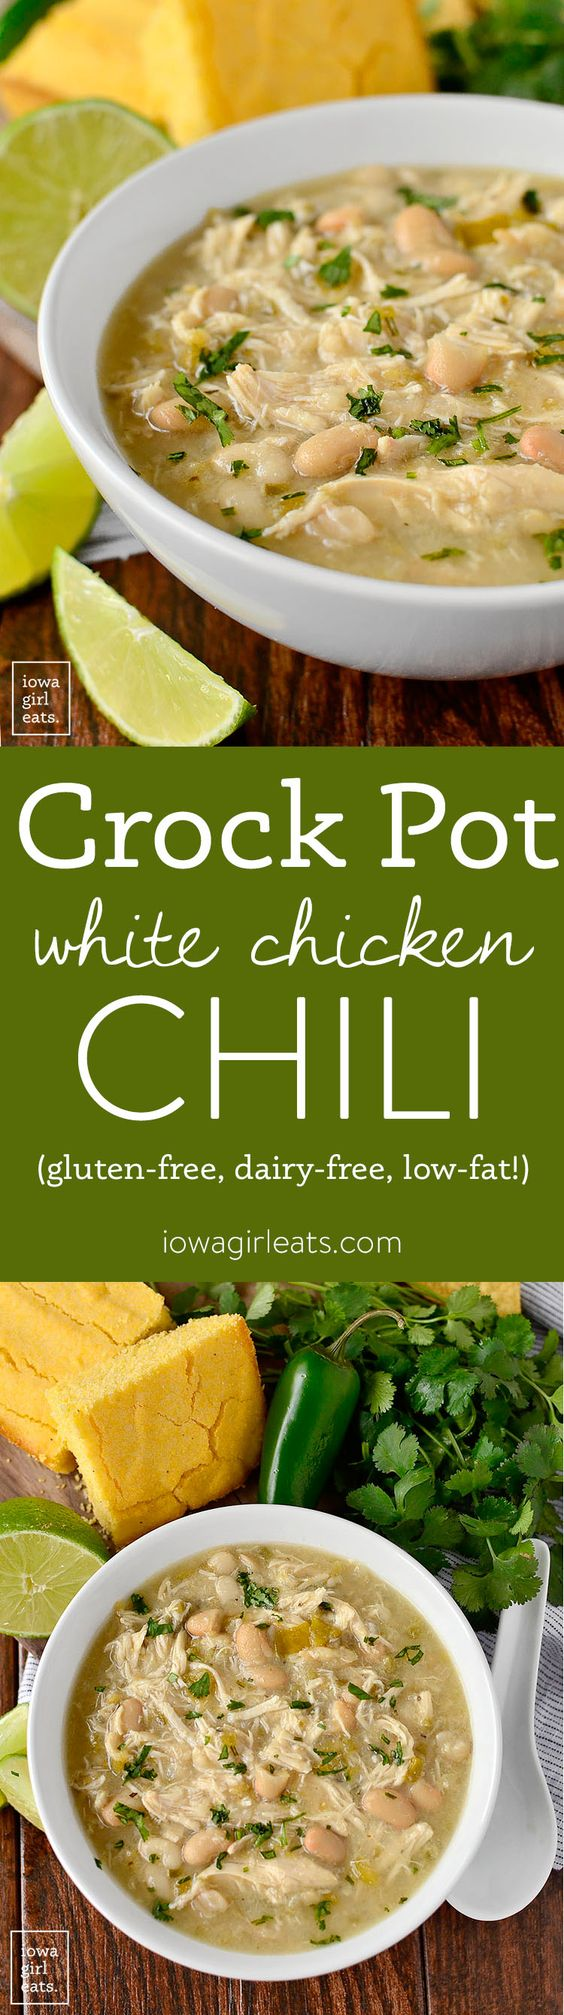 Chili Recipes: Crock Pot White Chicken Chili